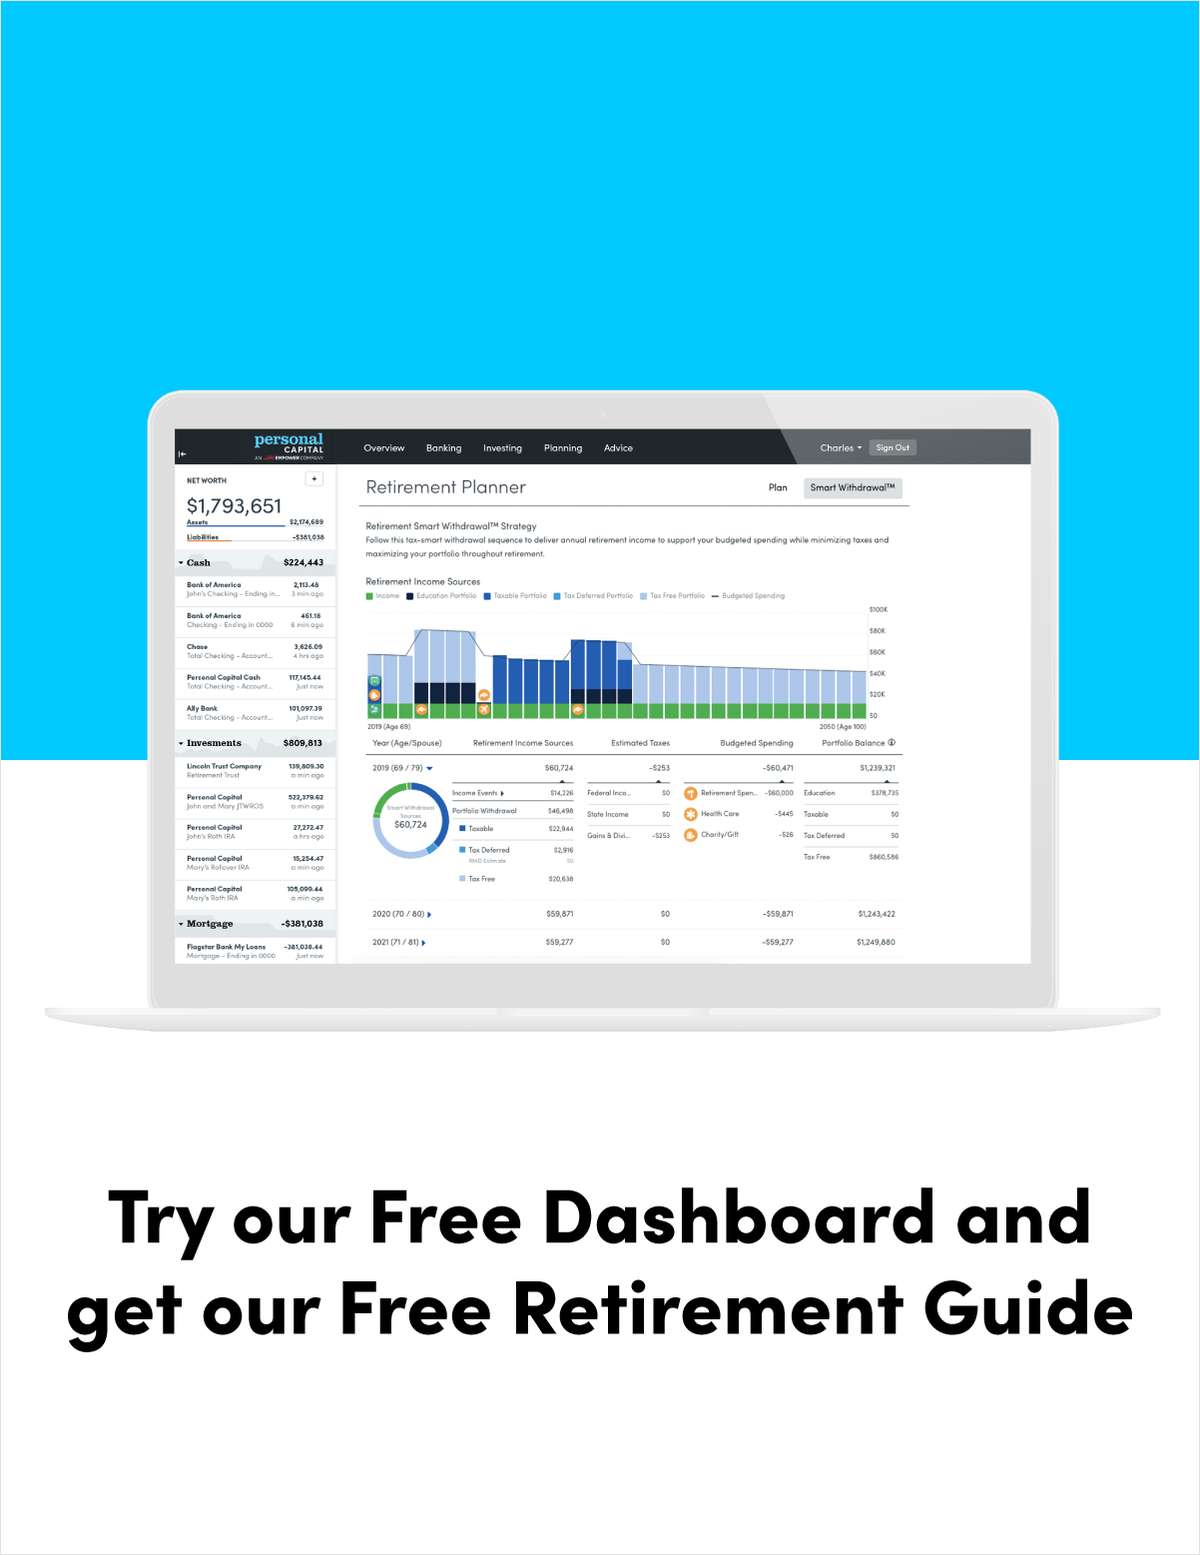 See if You're on Track with our FREE Retirement Planner™ & Dashboard